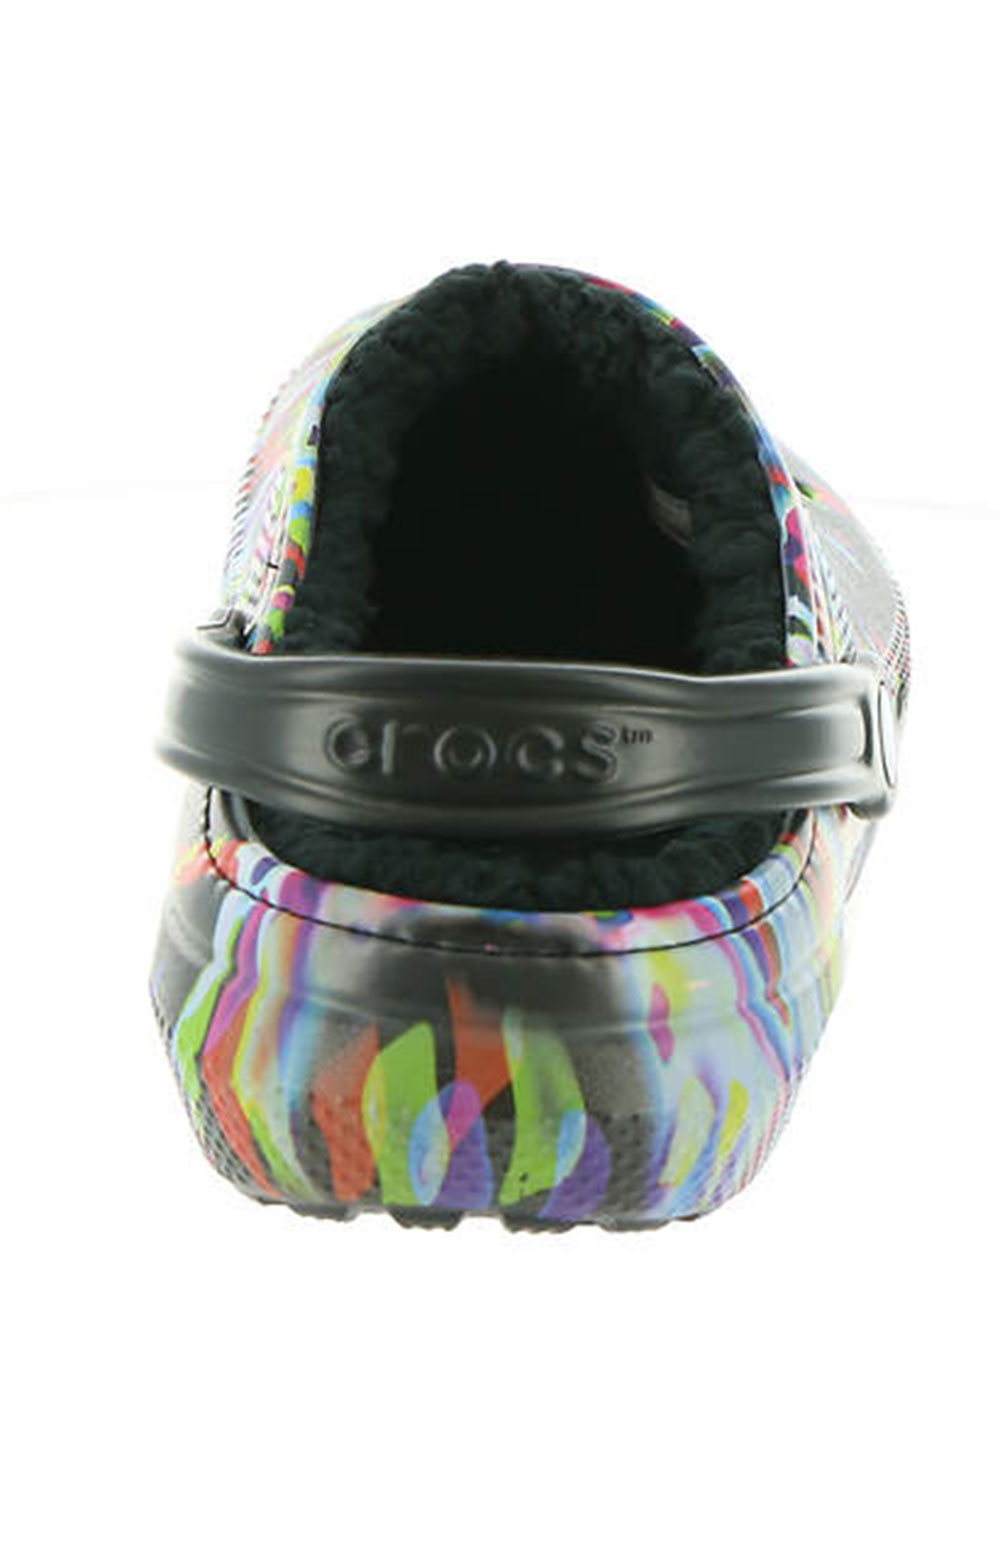 Classic Lined Out Of This World Clogs - Black/Multi 5